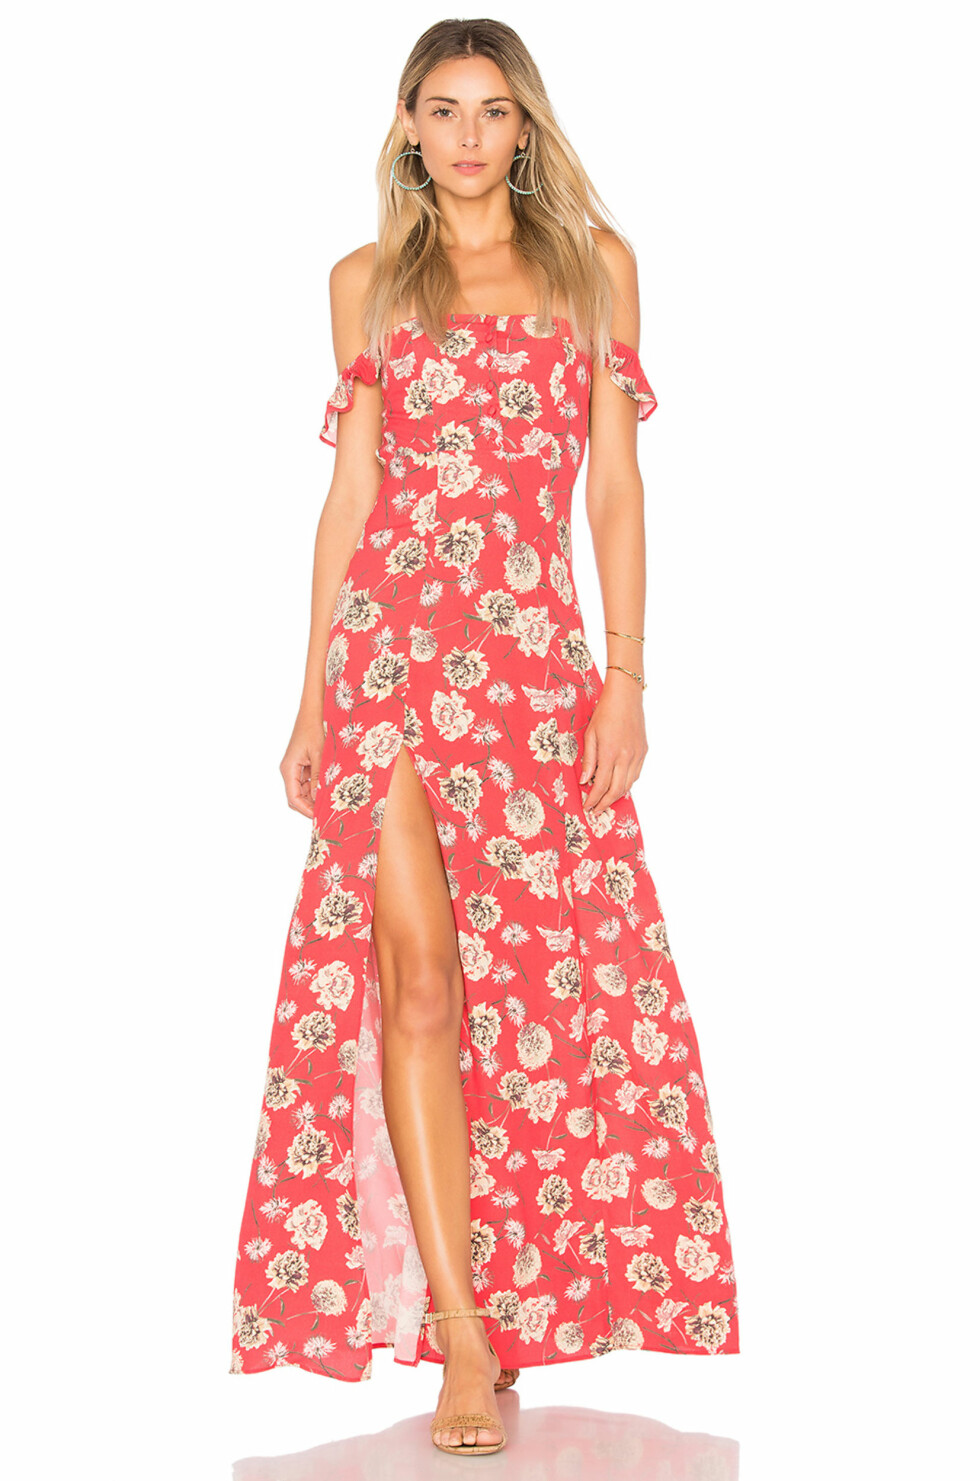 Kjole fra Flynn Skye via Revolve.com   kr 1682   http://www.revolve.com/flynn-skye-bardot-maxi-dress-in-floral-fireworks/dp/FLYN-WD167/?d=Womens&d=Womens&page=1&lc=33&itrownum=11&itcurrpage=1&itview=01&plpSrc=/r/Brands.jsp?&s=c&c=Dresses&color%5B%5D=red&color%5B%5D=pink&color%5B%5D=red&sortBy=featured&product=FLYN-WD167&